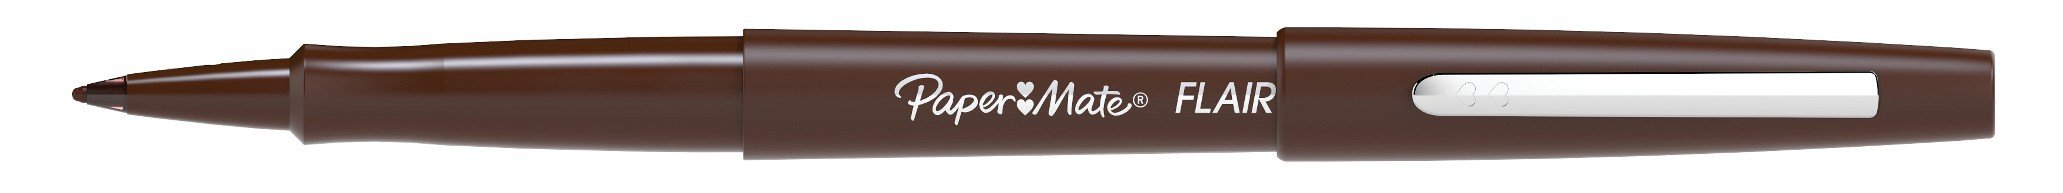 Paper Mate Flair Felt Tip Pens, Medium Point, Limited Edition Candy Pop Pack by Paper Mate (Image #7)